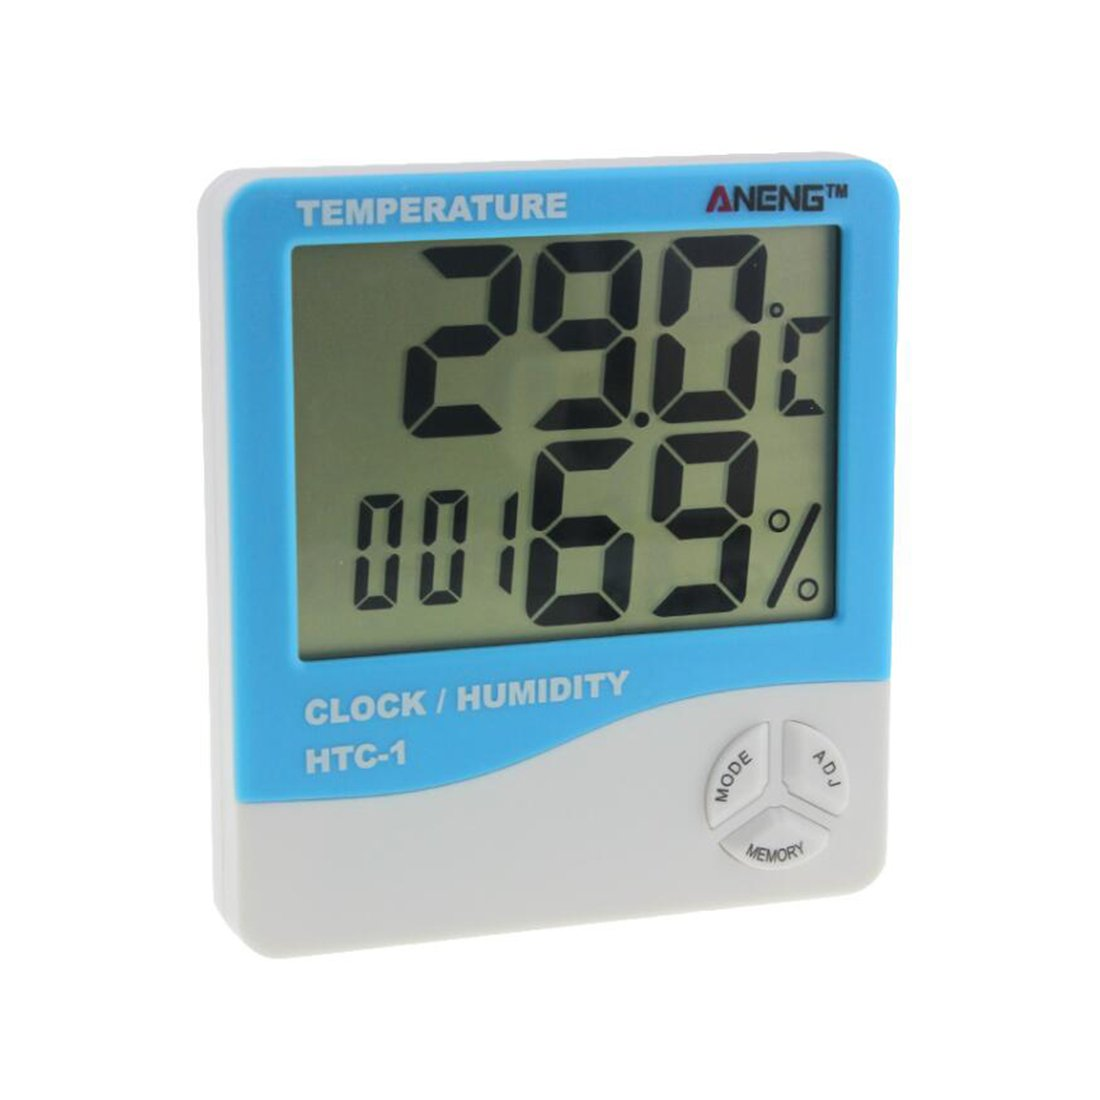 joyliveCY LCD Alarm Clock Thermometer/Humidity Meter, Indoor Digital Humidity Temperature Thermometer Sensor – Blue CY-Buity